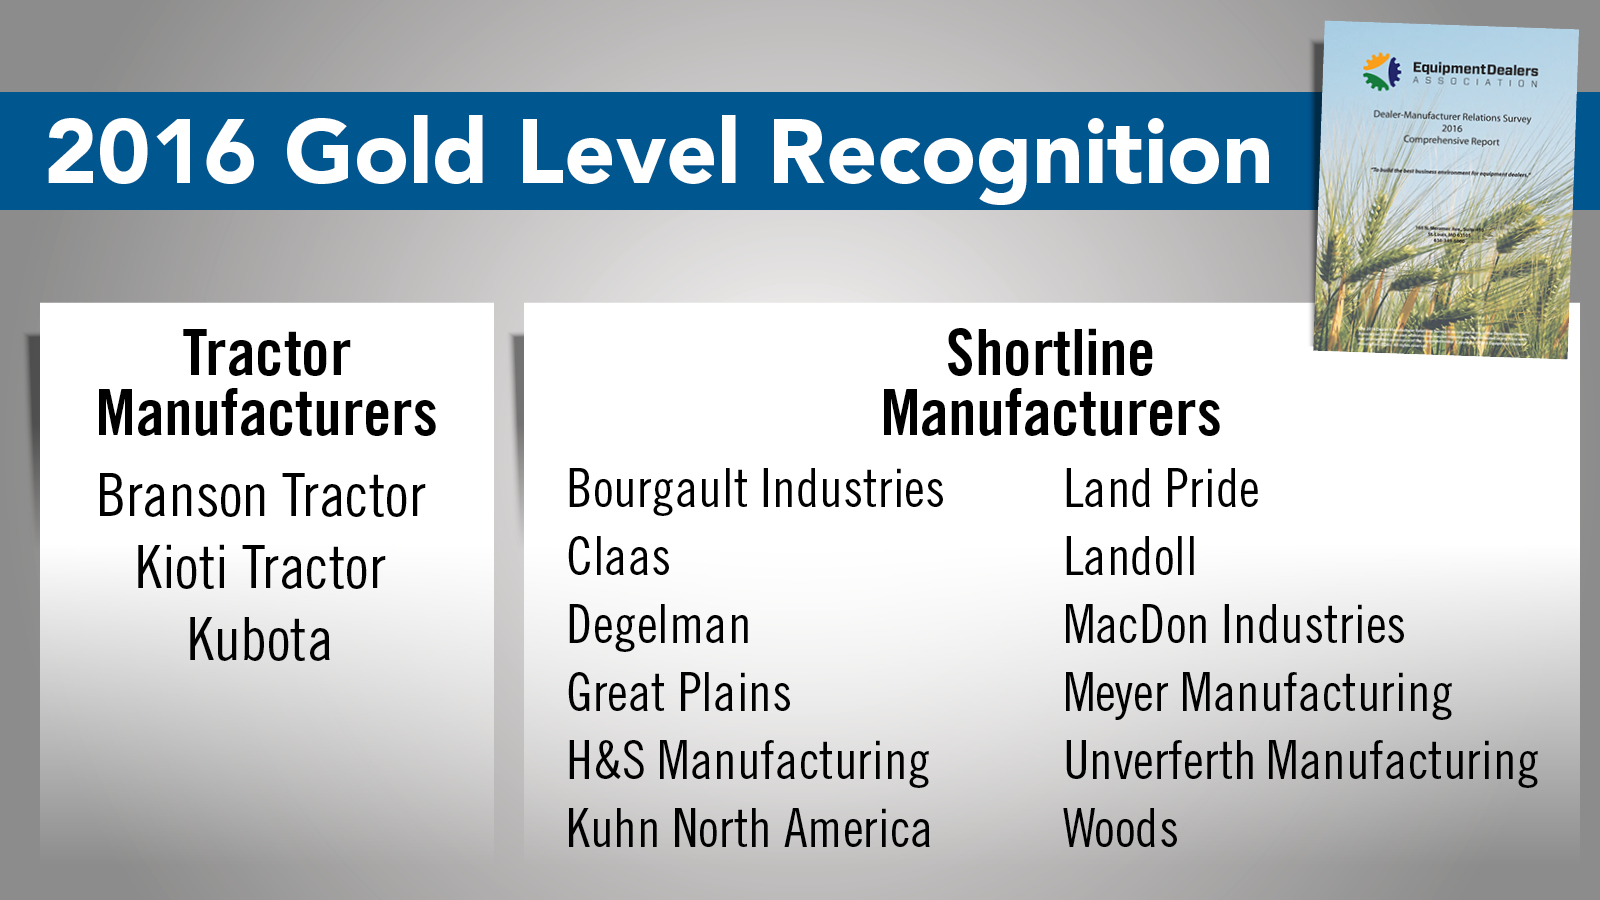 EDA Gold Level Recognition